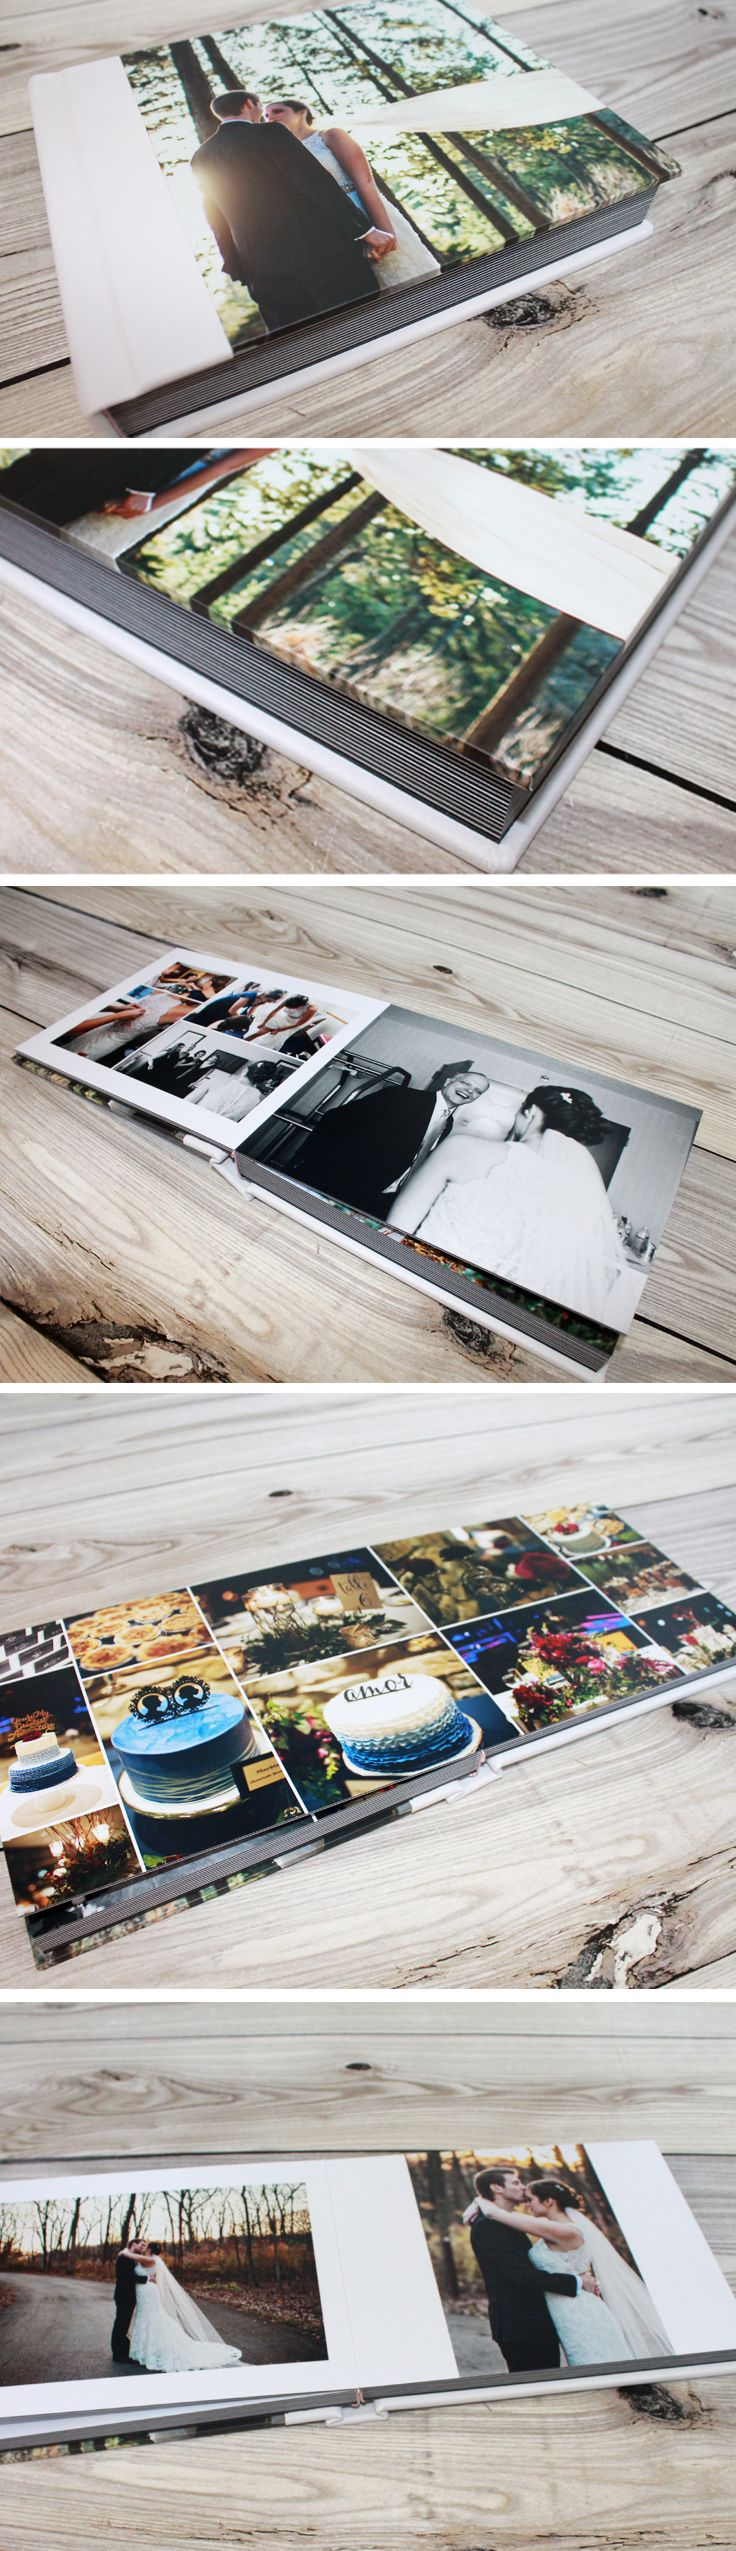 Magazine cover wedding album.  Price starts at $350 including wedding album design service with unlimited revisions.